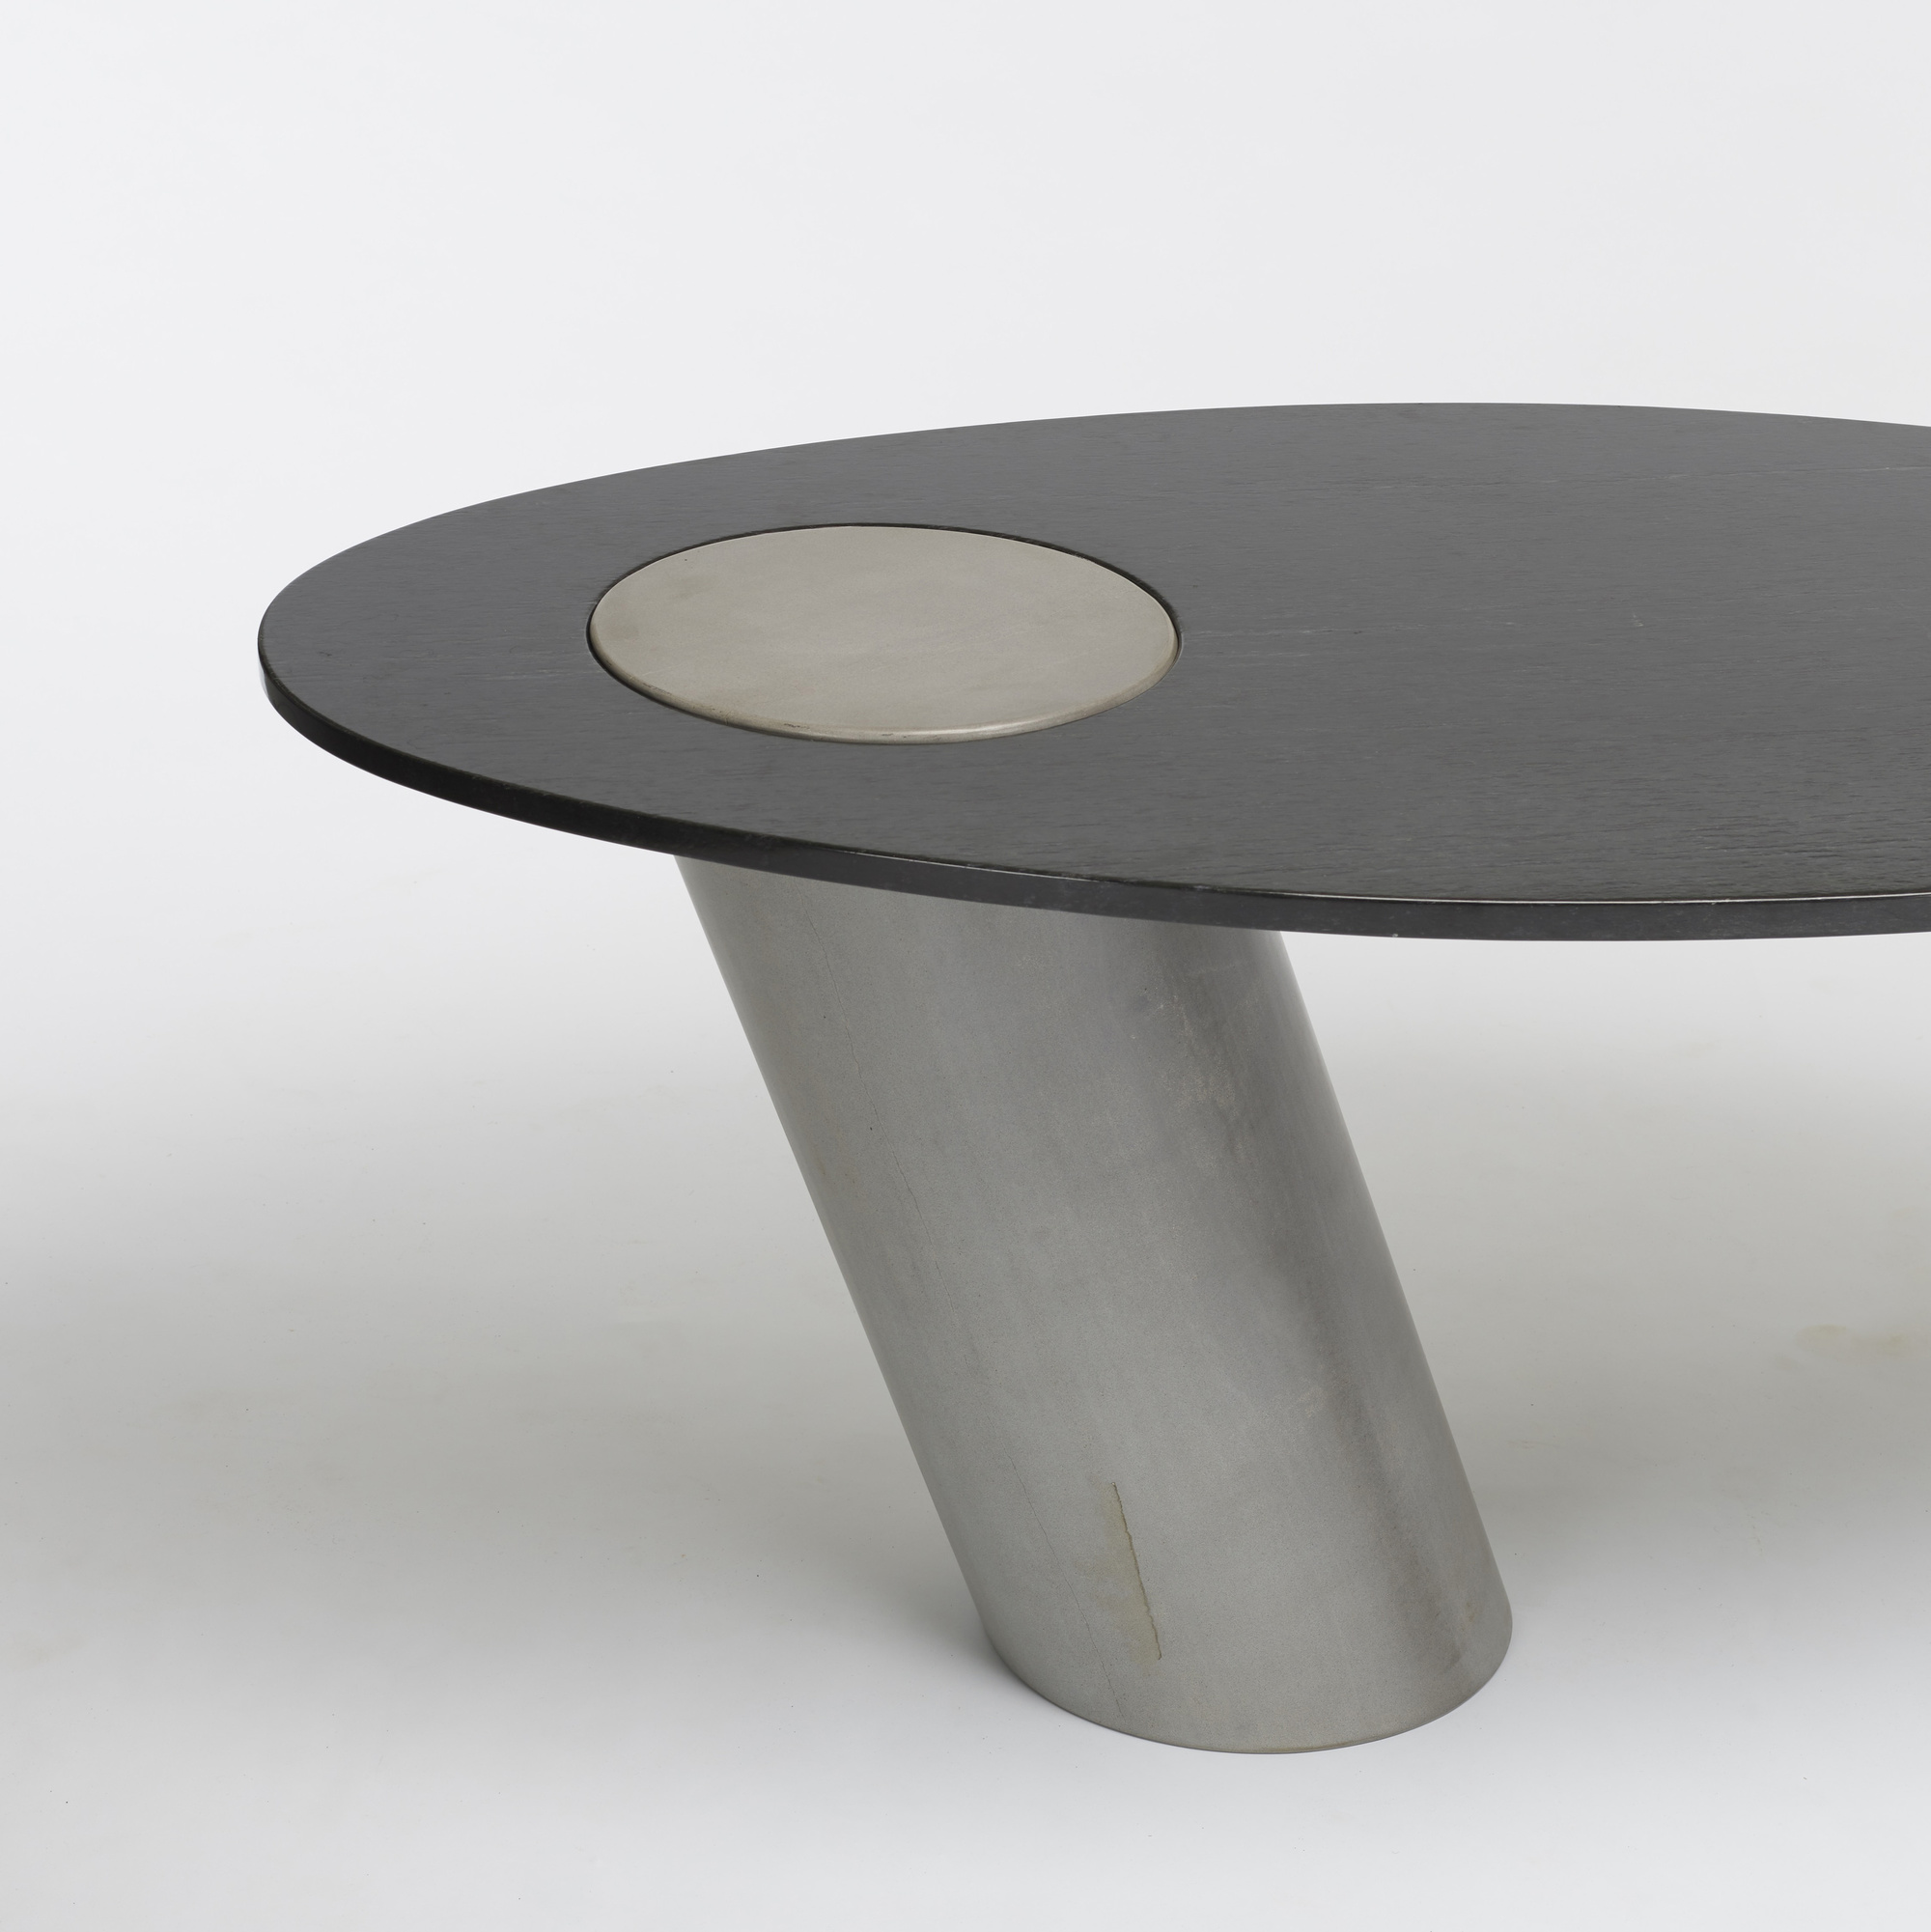 528: Angelo Mangiarotti / cantilevered table (2 of 2)